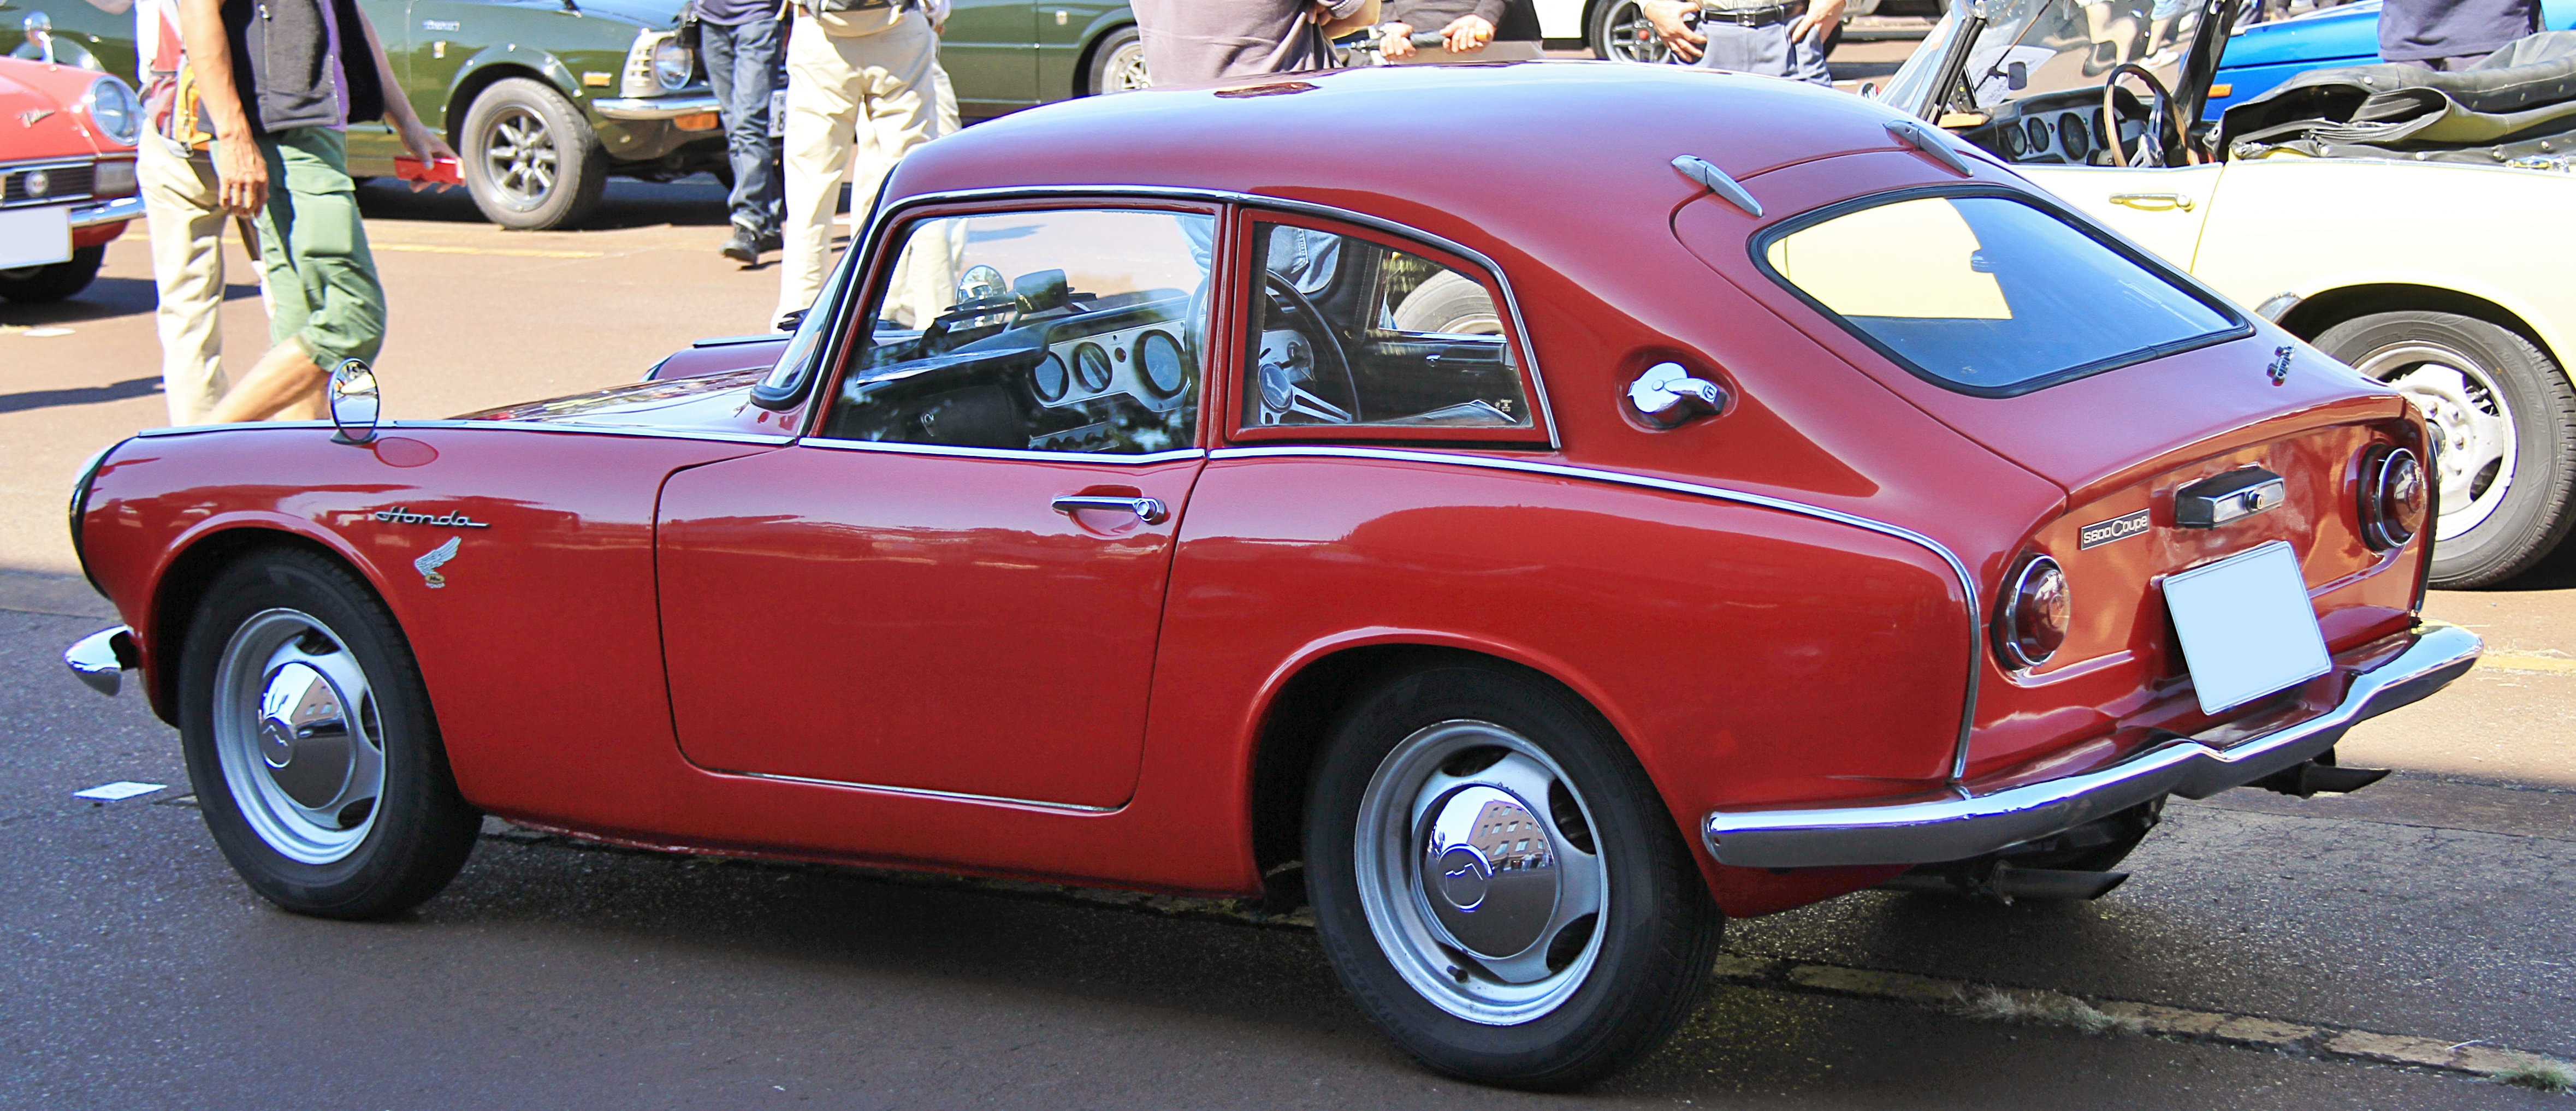 File 1965 Honda S600 Coupe Rear Jpg Wikimedia Commons